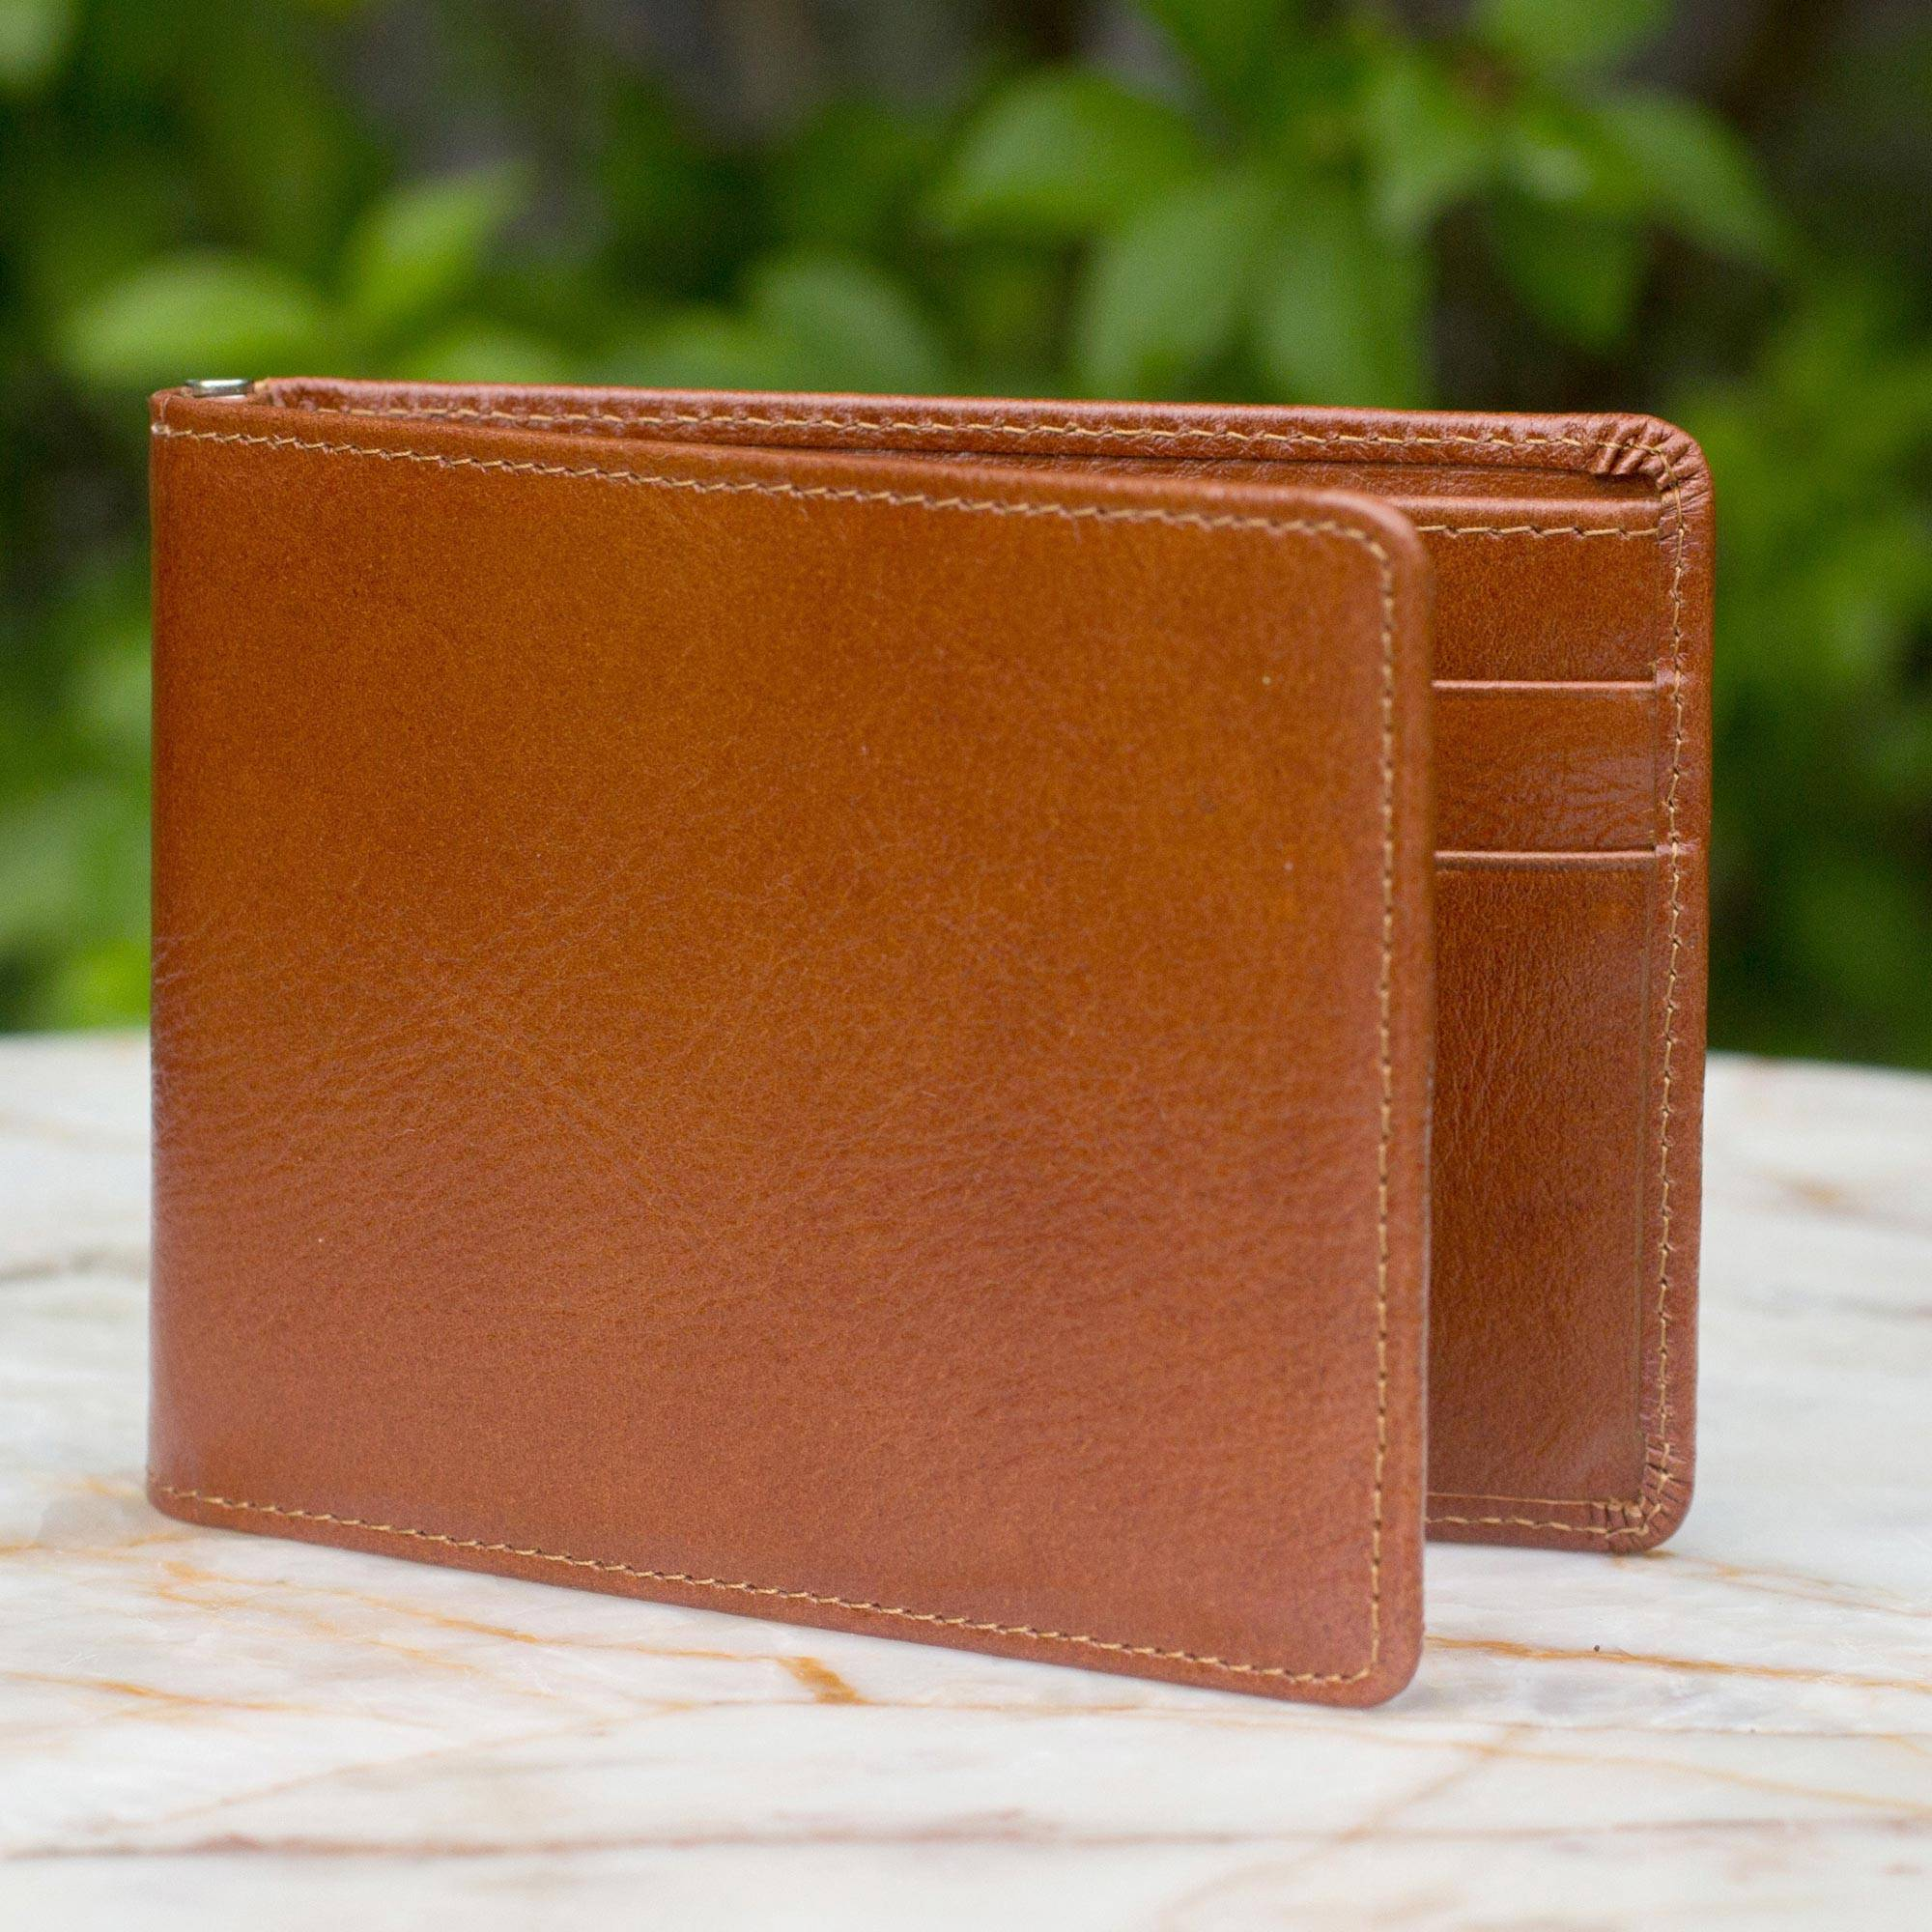 Credit to Brown Men's Leather Wallet Father's Day Gifting Handcrafted